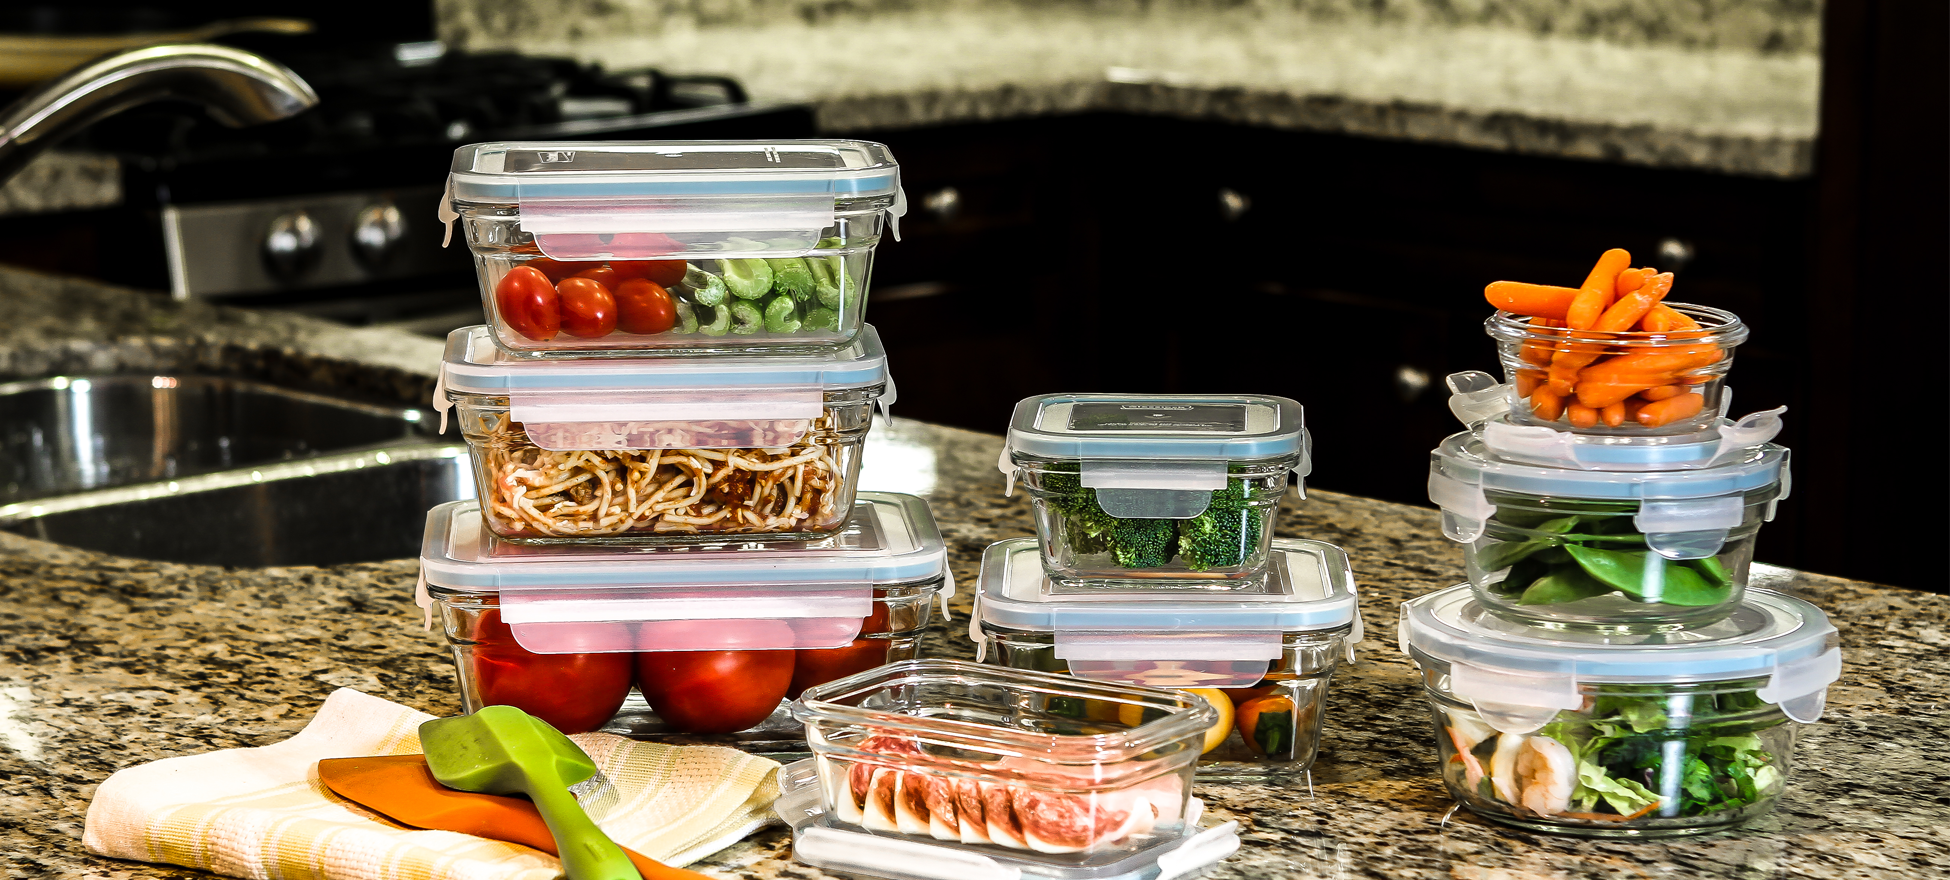 Clear food storage containers arranged on a countertop